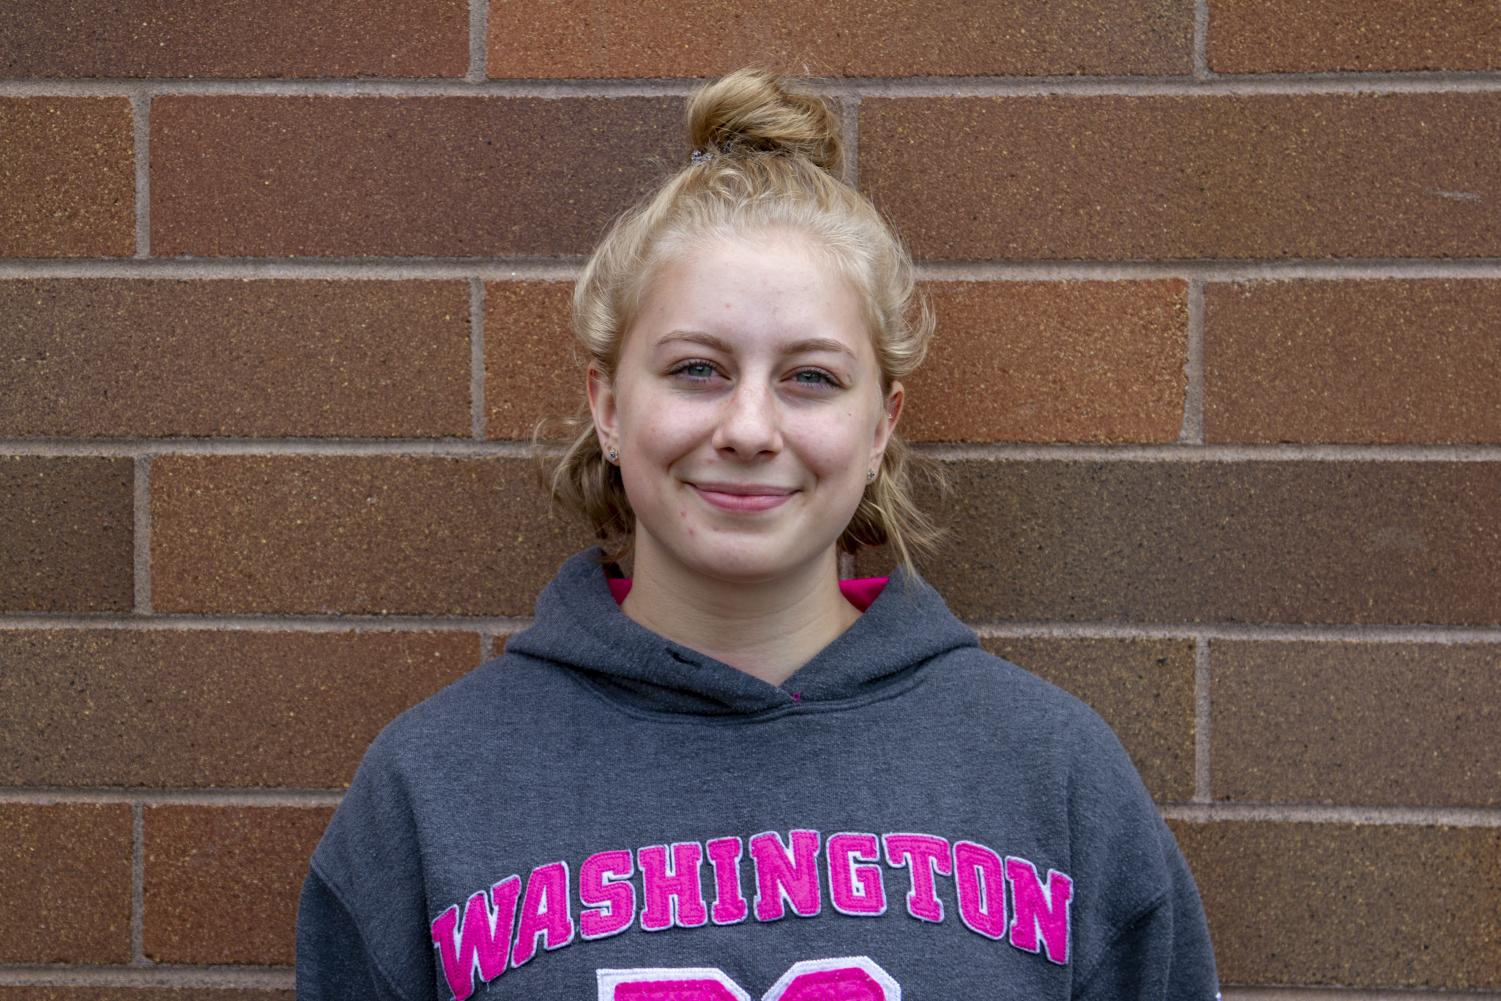 Outside of school, sophomore Madison Fahlman-Katler does CrossFit five to six times a week.